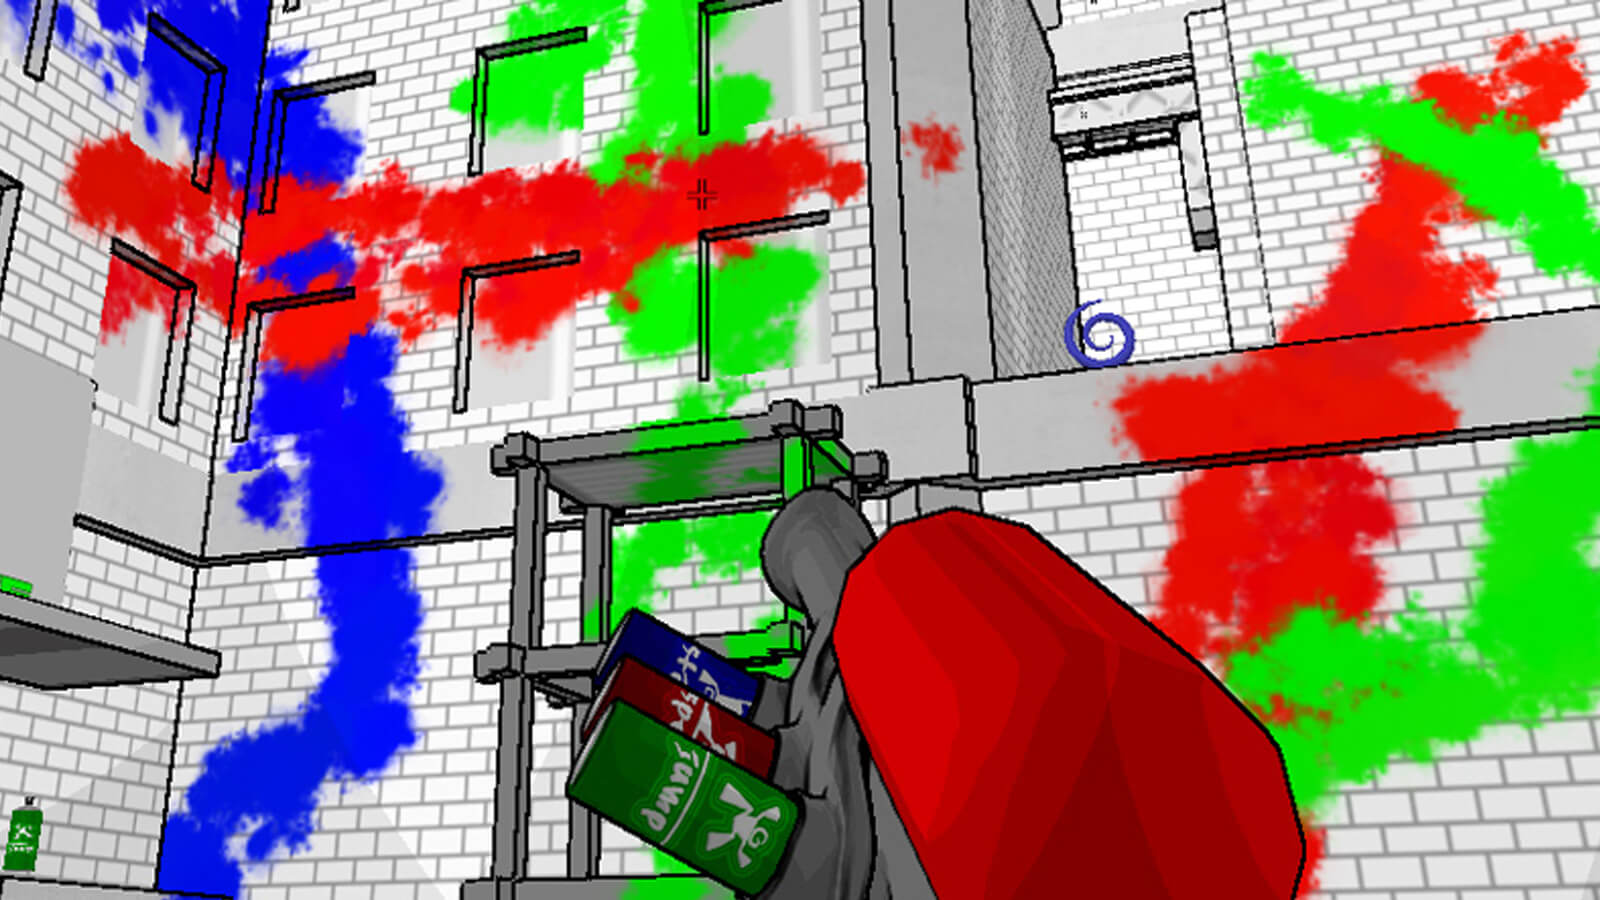 A spray paint gun points at a grey brick building covered in splotches of blue, red and green paint.